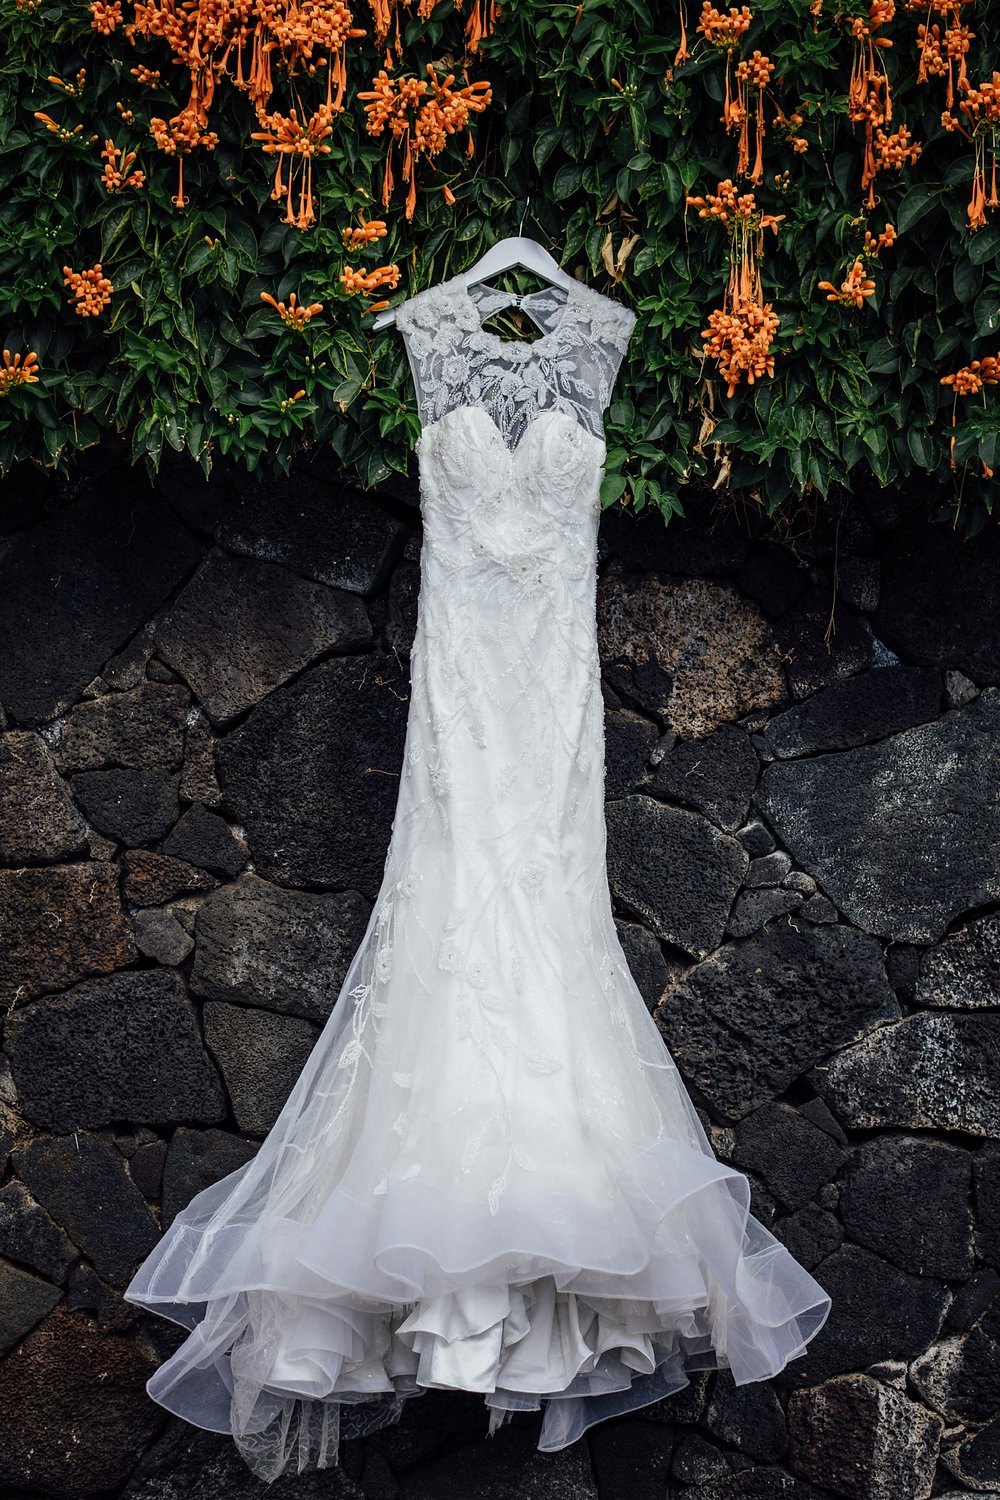 bride's dress in kona wedding